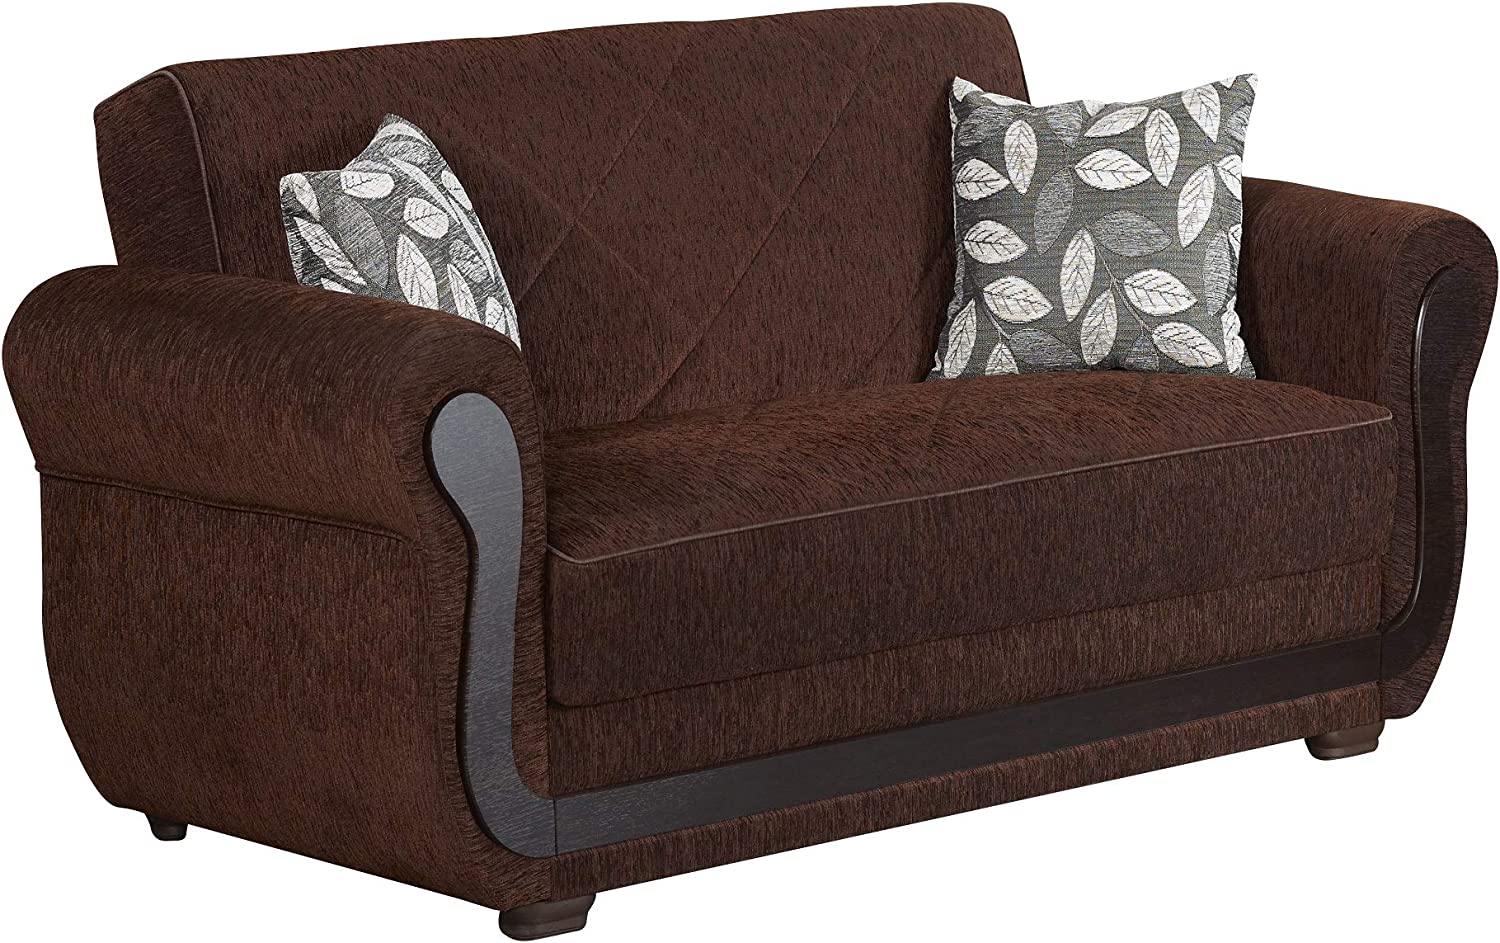 BEYAN Sunrise Collection Upholstered Convertible Storage Love Seat with Easy Access Storage Space, Includes 2 Pillows, Dark Brown